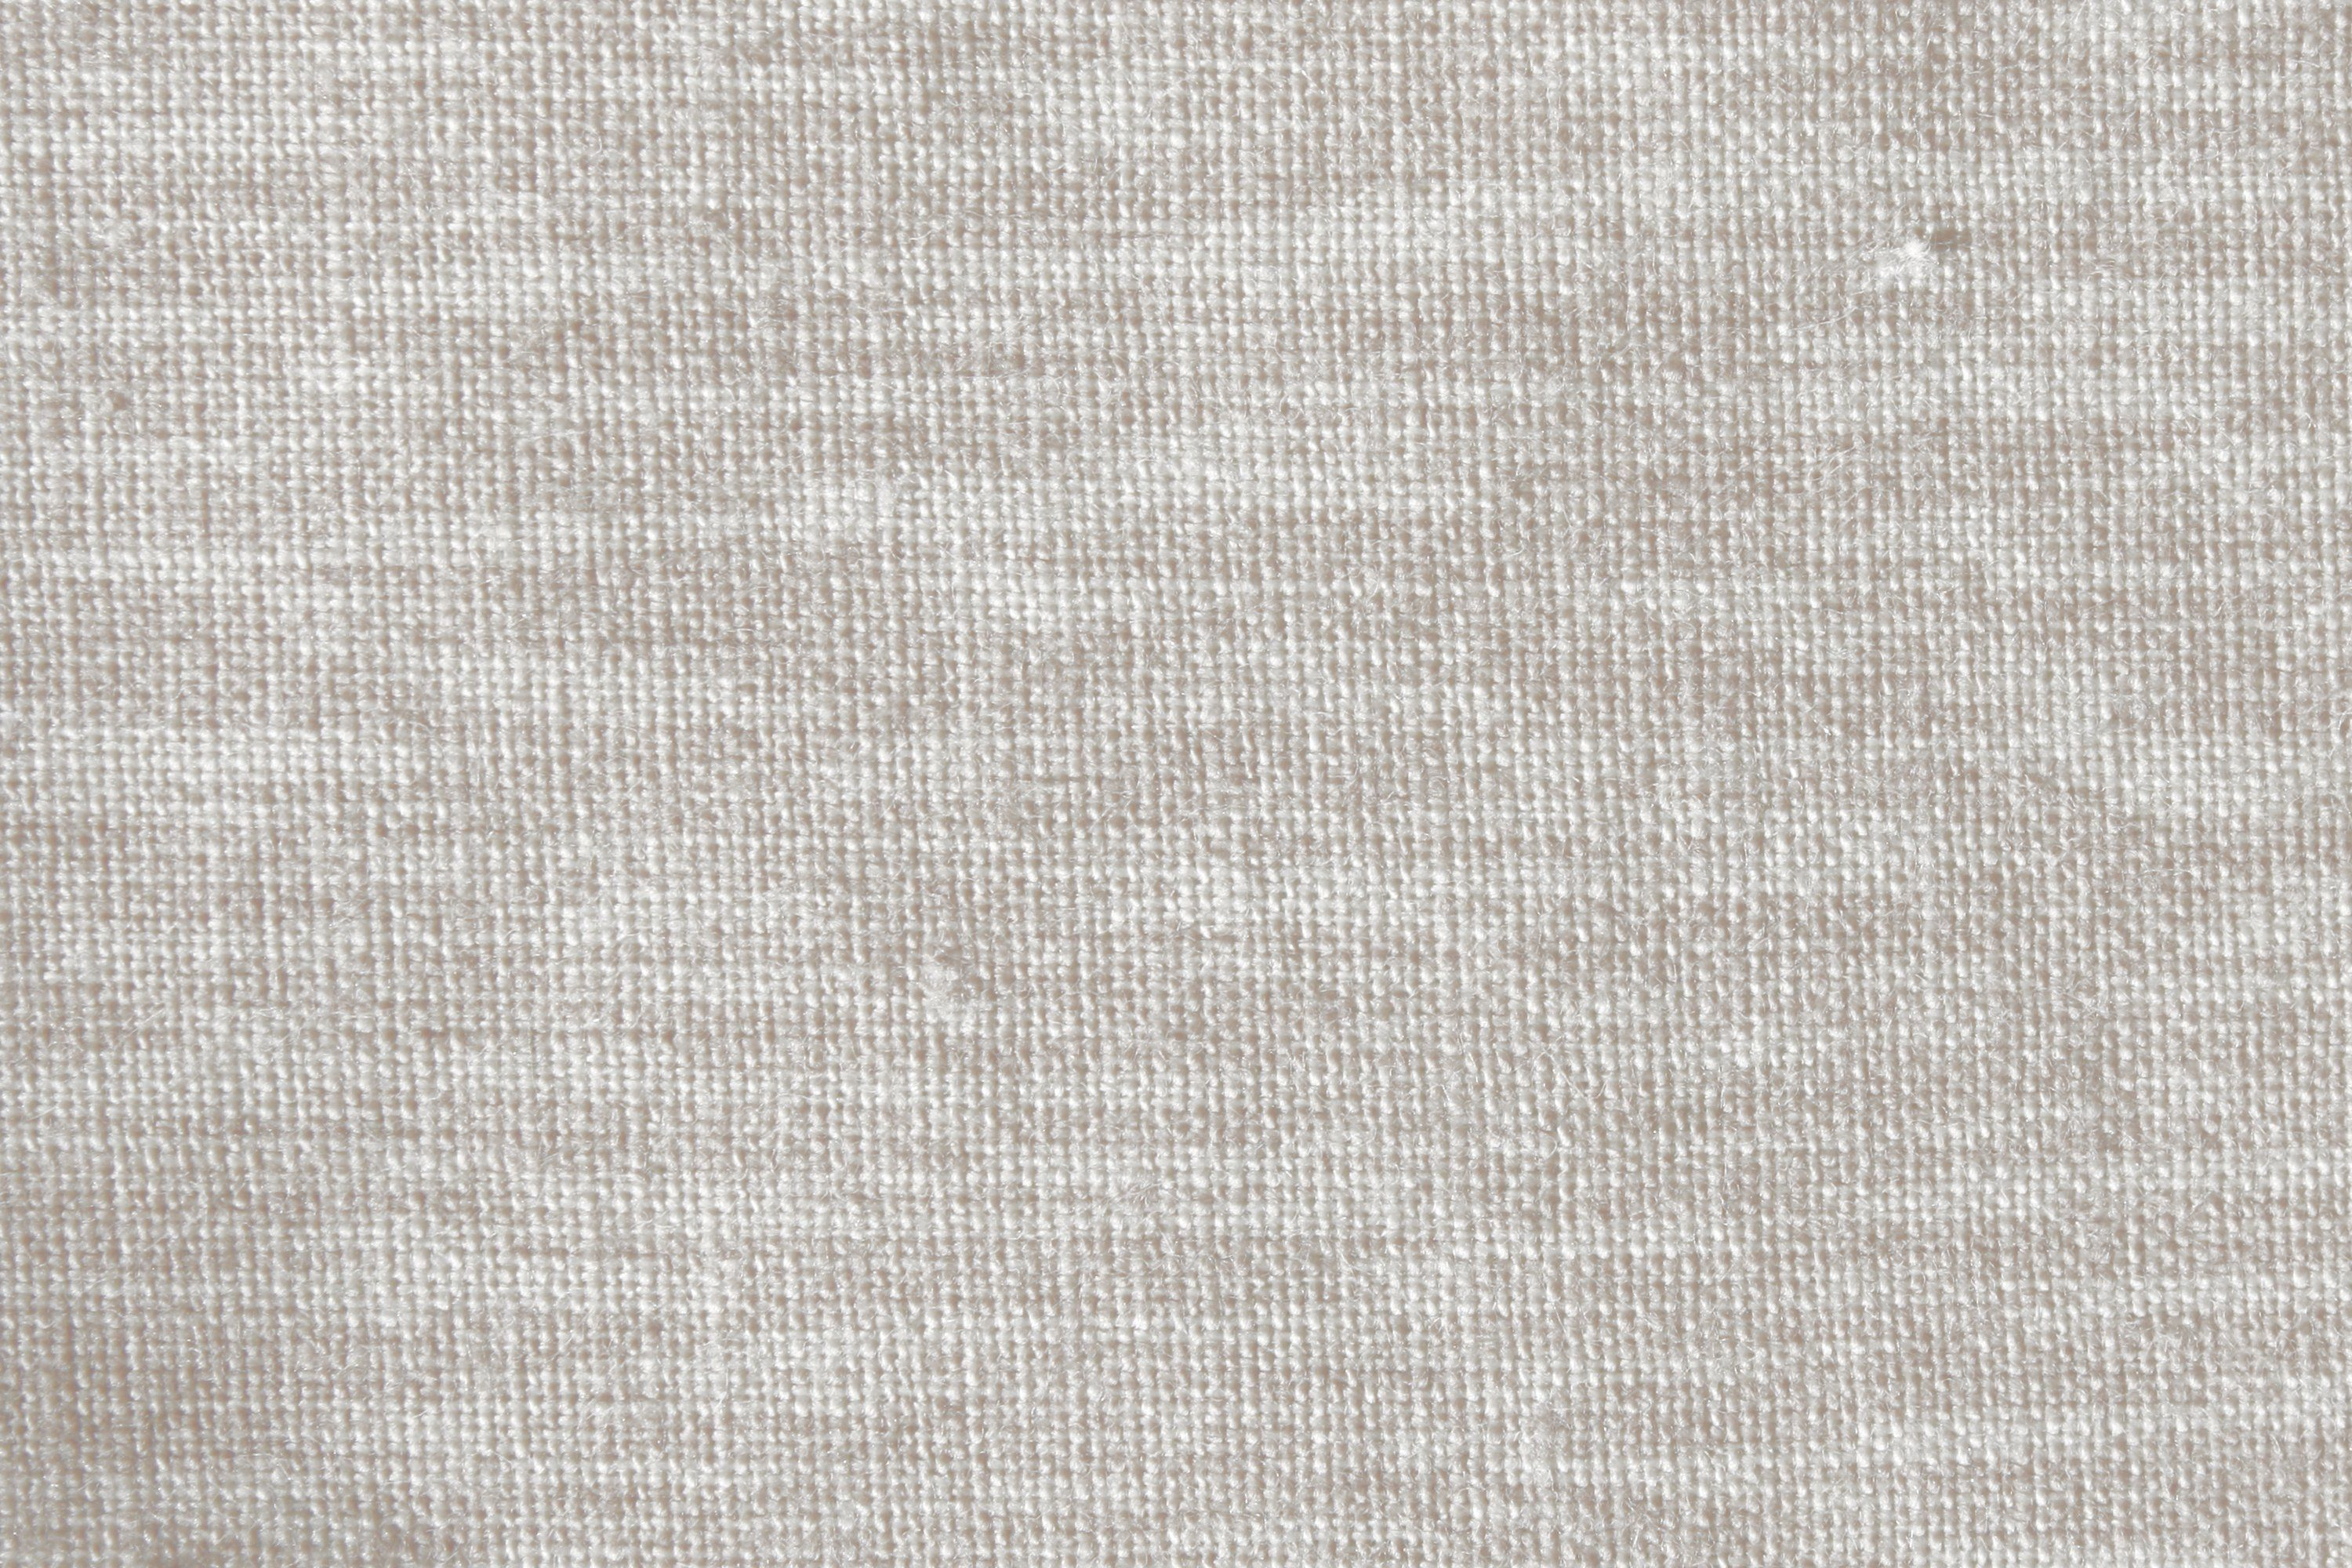 White Woven Fabric Close Up Texture